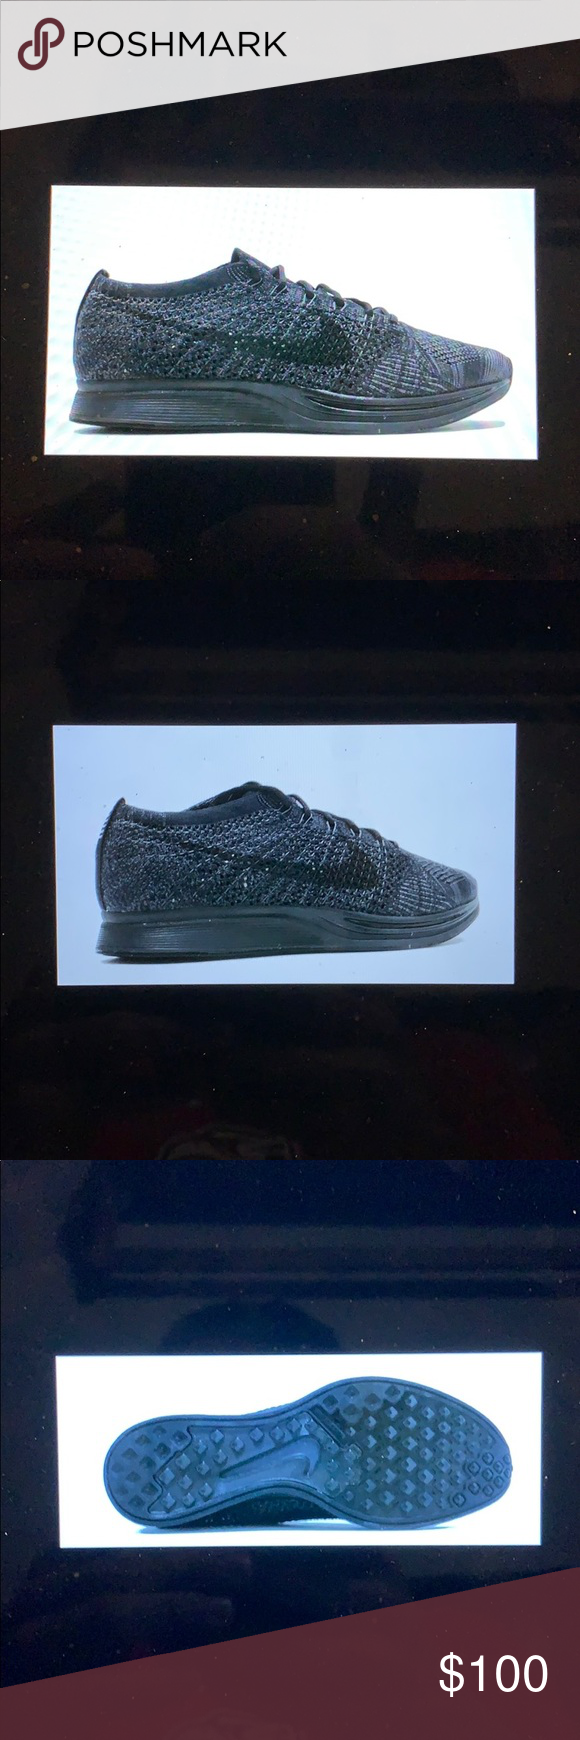 half off 5e21a c6a10 Nike Flyknit Racer Running Shoes Triple Black Brand new without the box Men s  sizes 7,